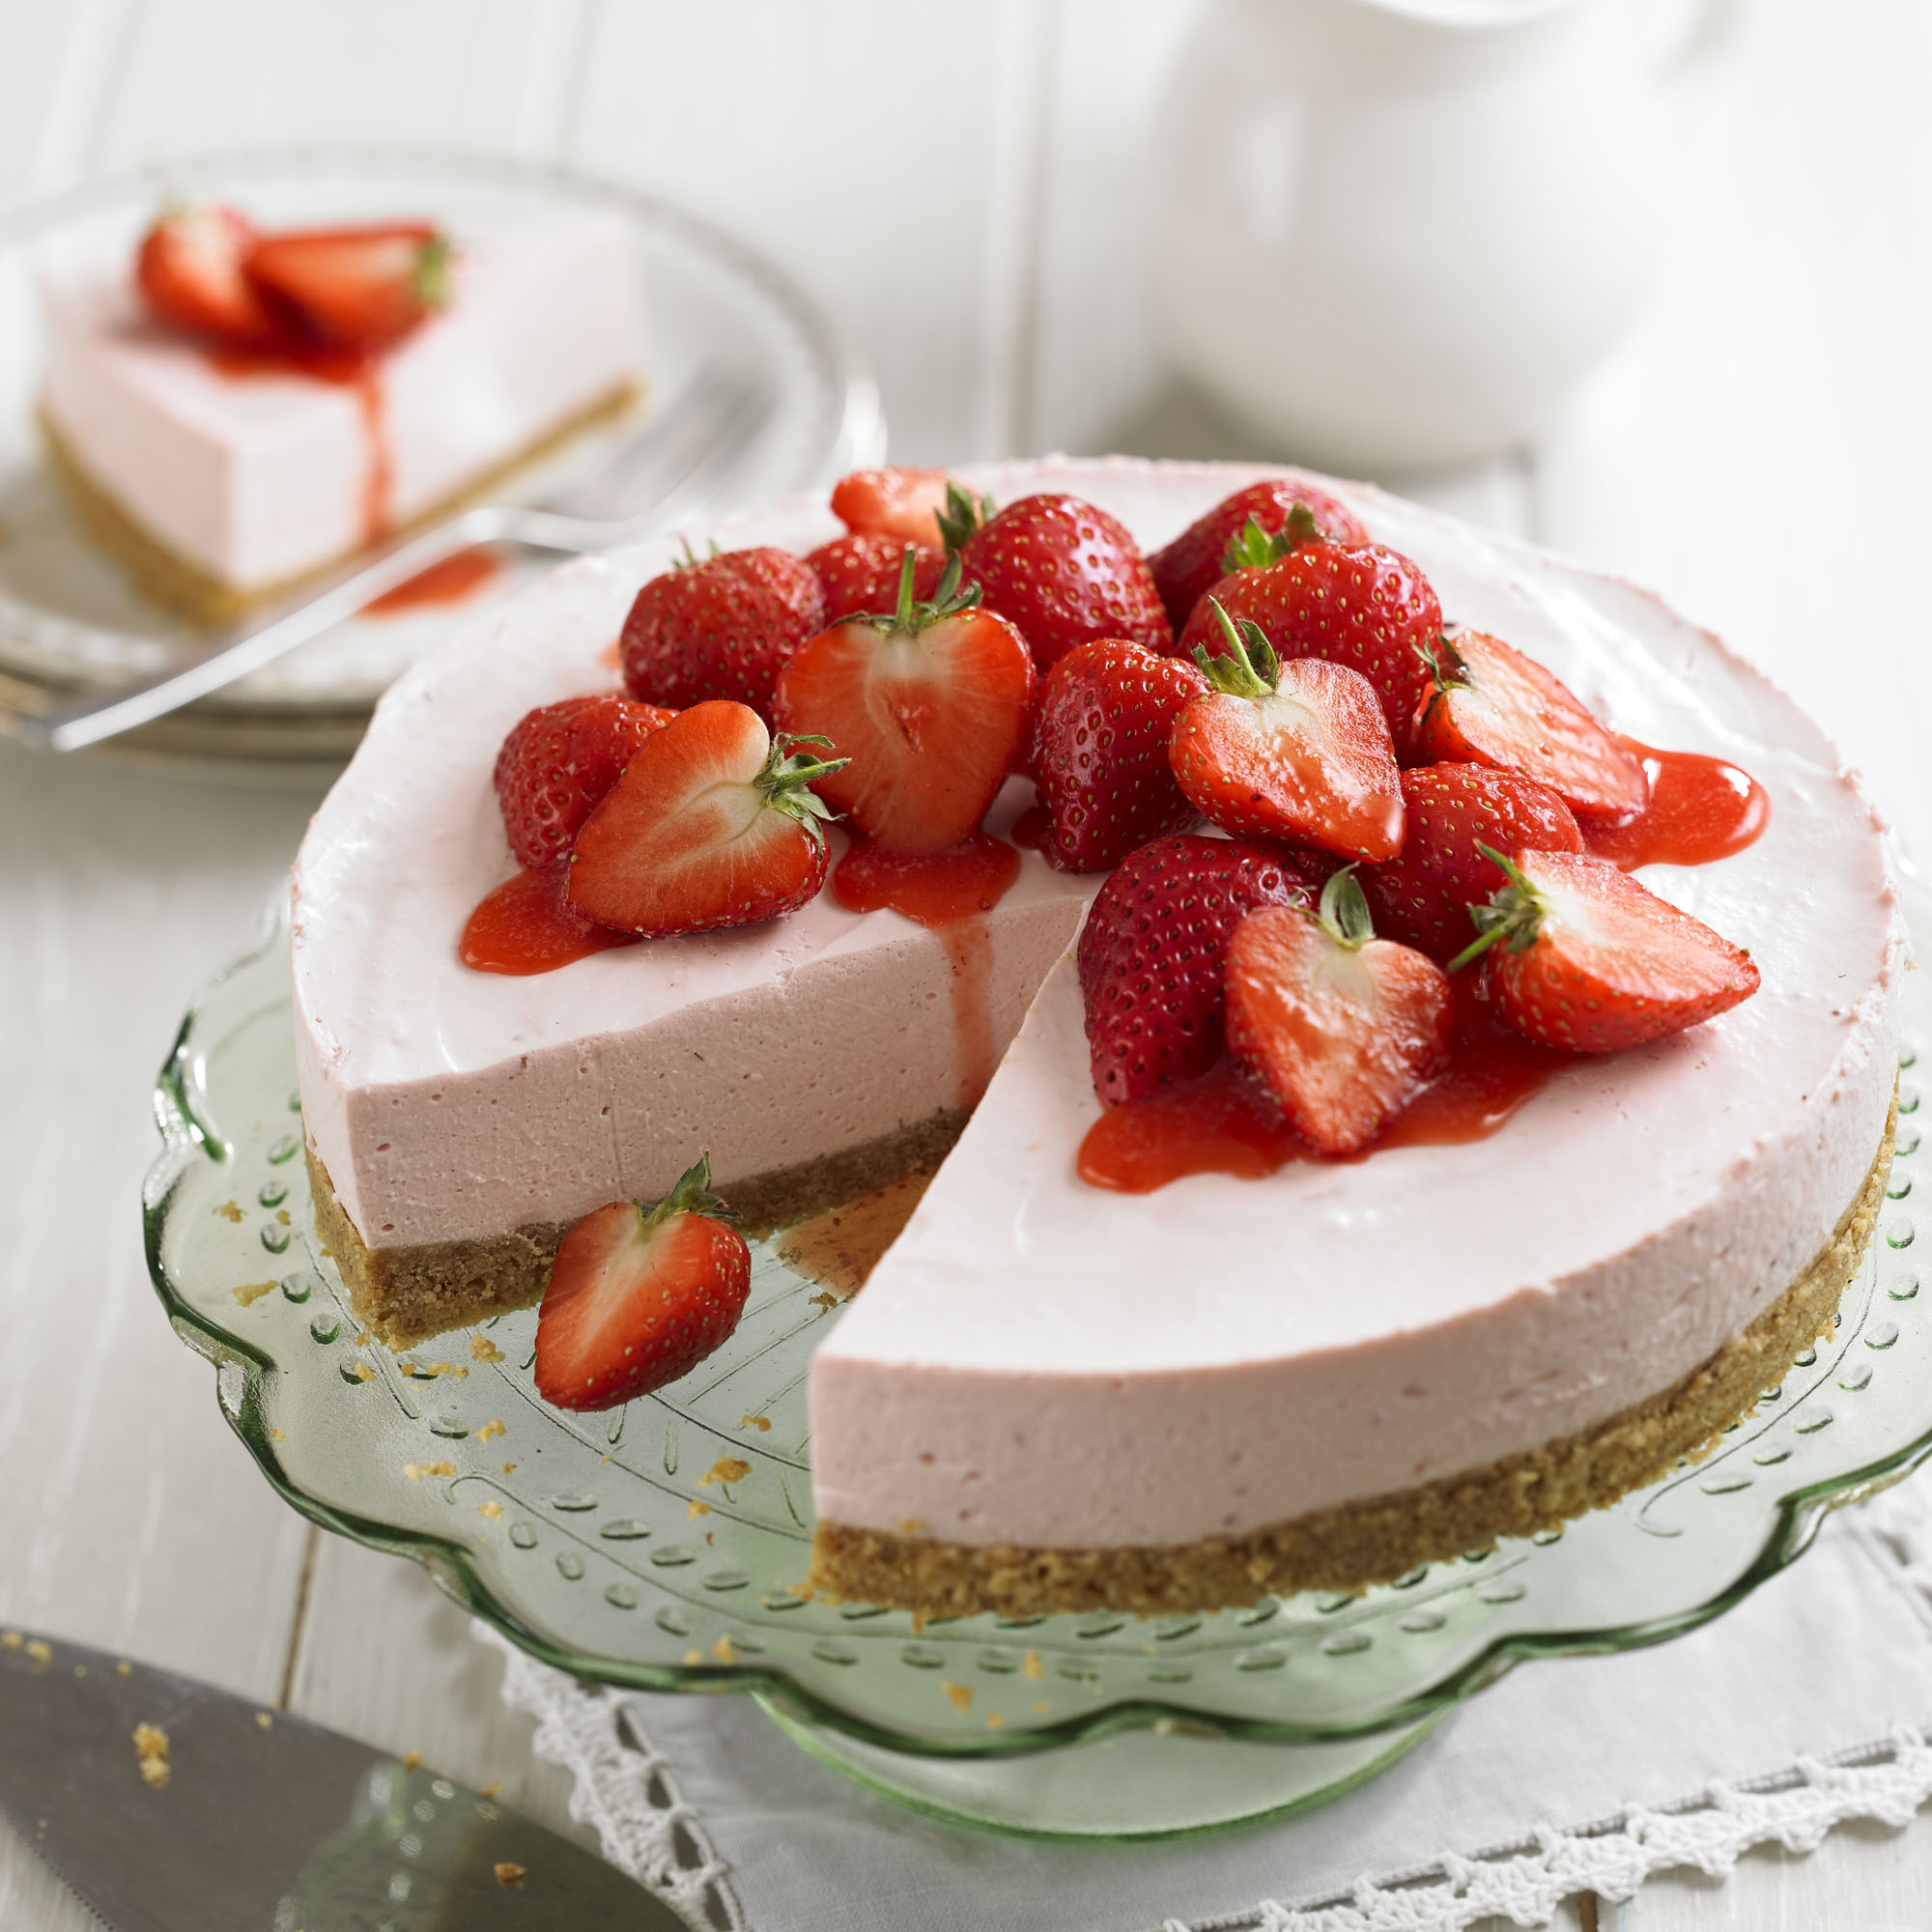 Strawberry Cheesecake With Strawberry Sauce Dessert Recipes